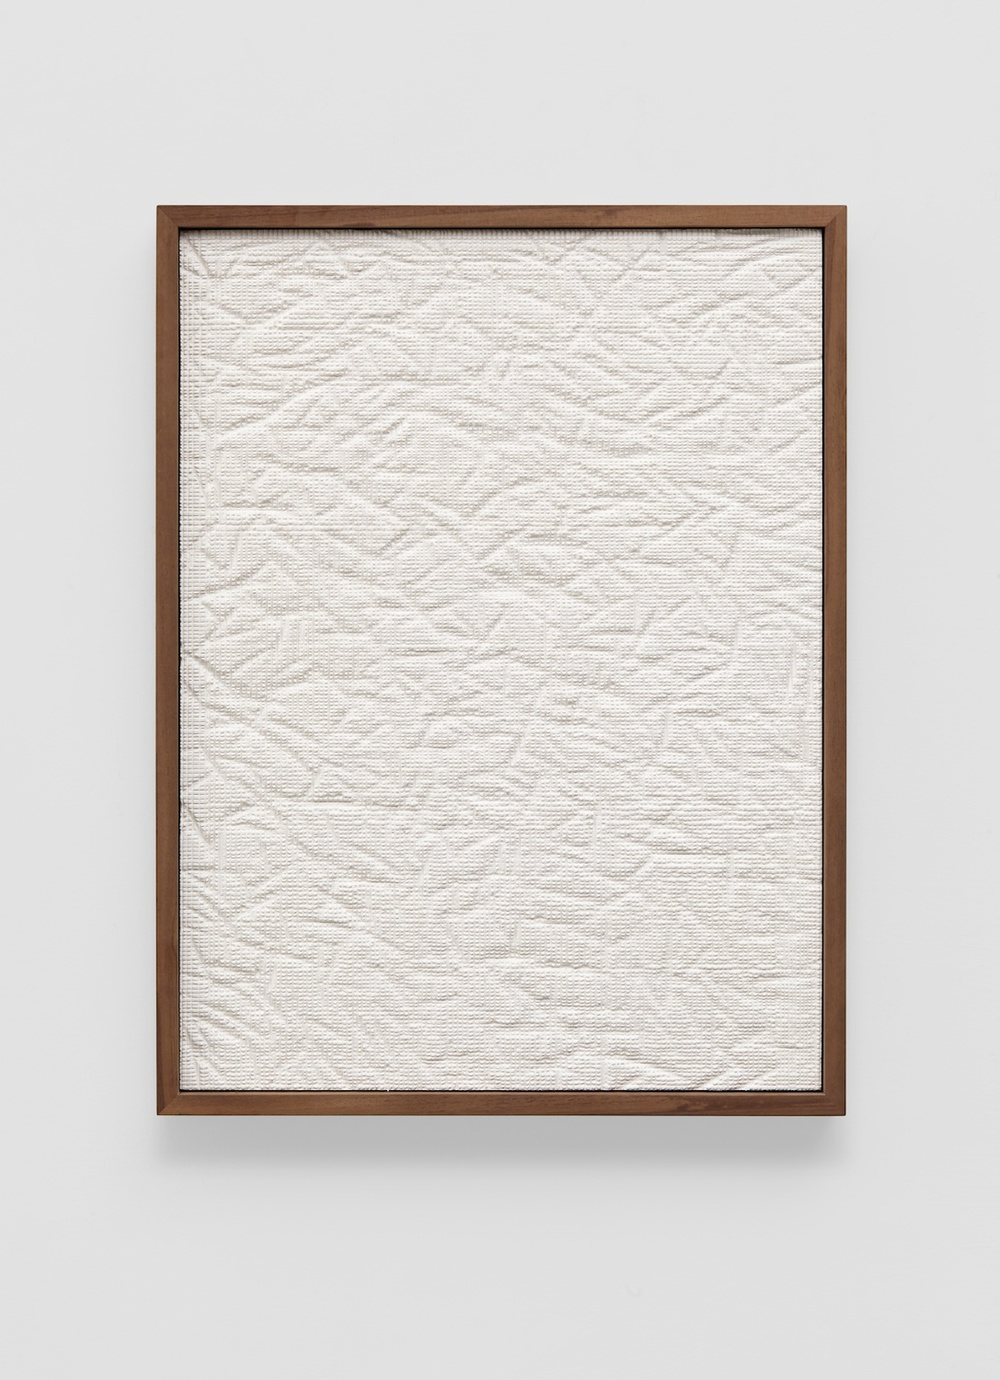 Anthony Pearson  Untitled (Etched Plaster)  2014 Pigmented hydrocal in walnut frame 24 ¼h x 18 ½w x 2 ¼d in AP354